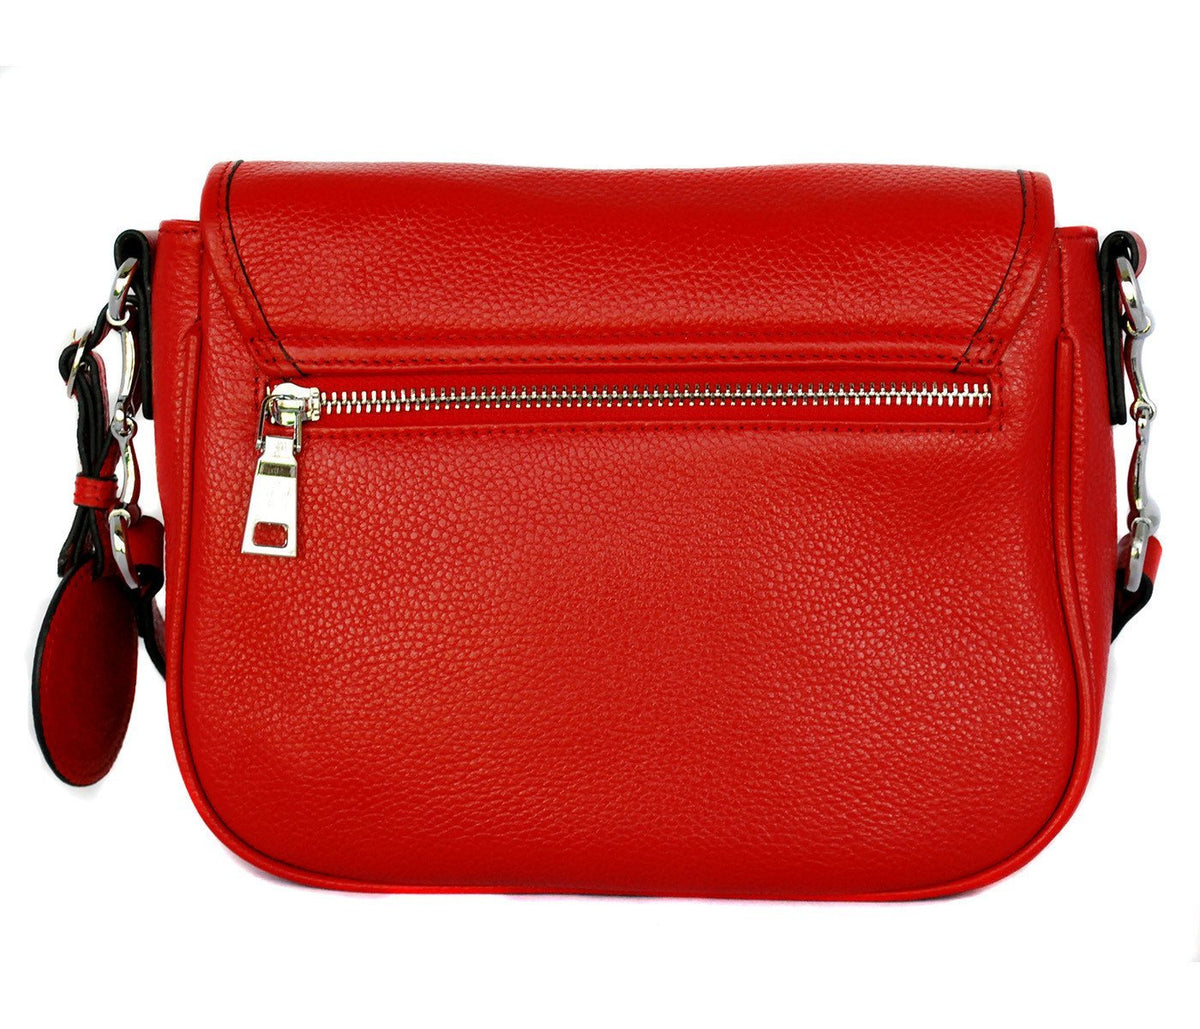 Tucker Tweed Leather Handbags The Camden Crossbody: Dressage